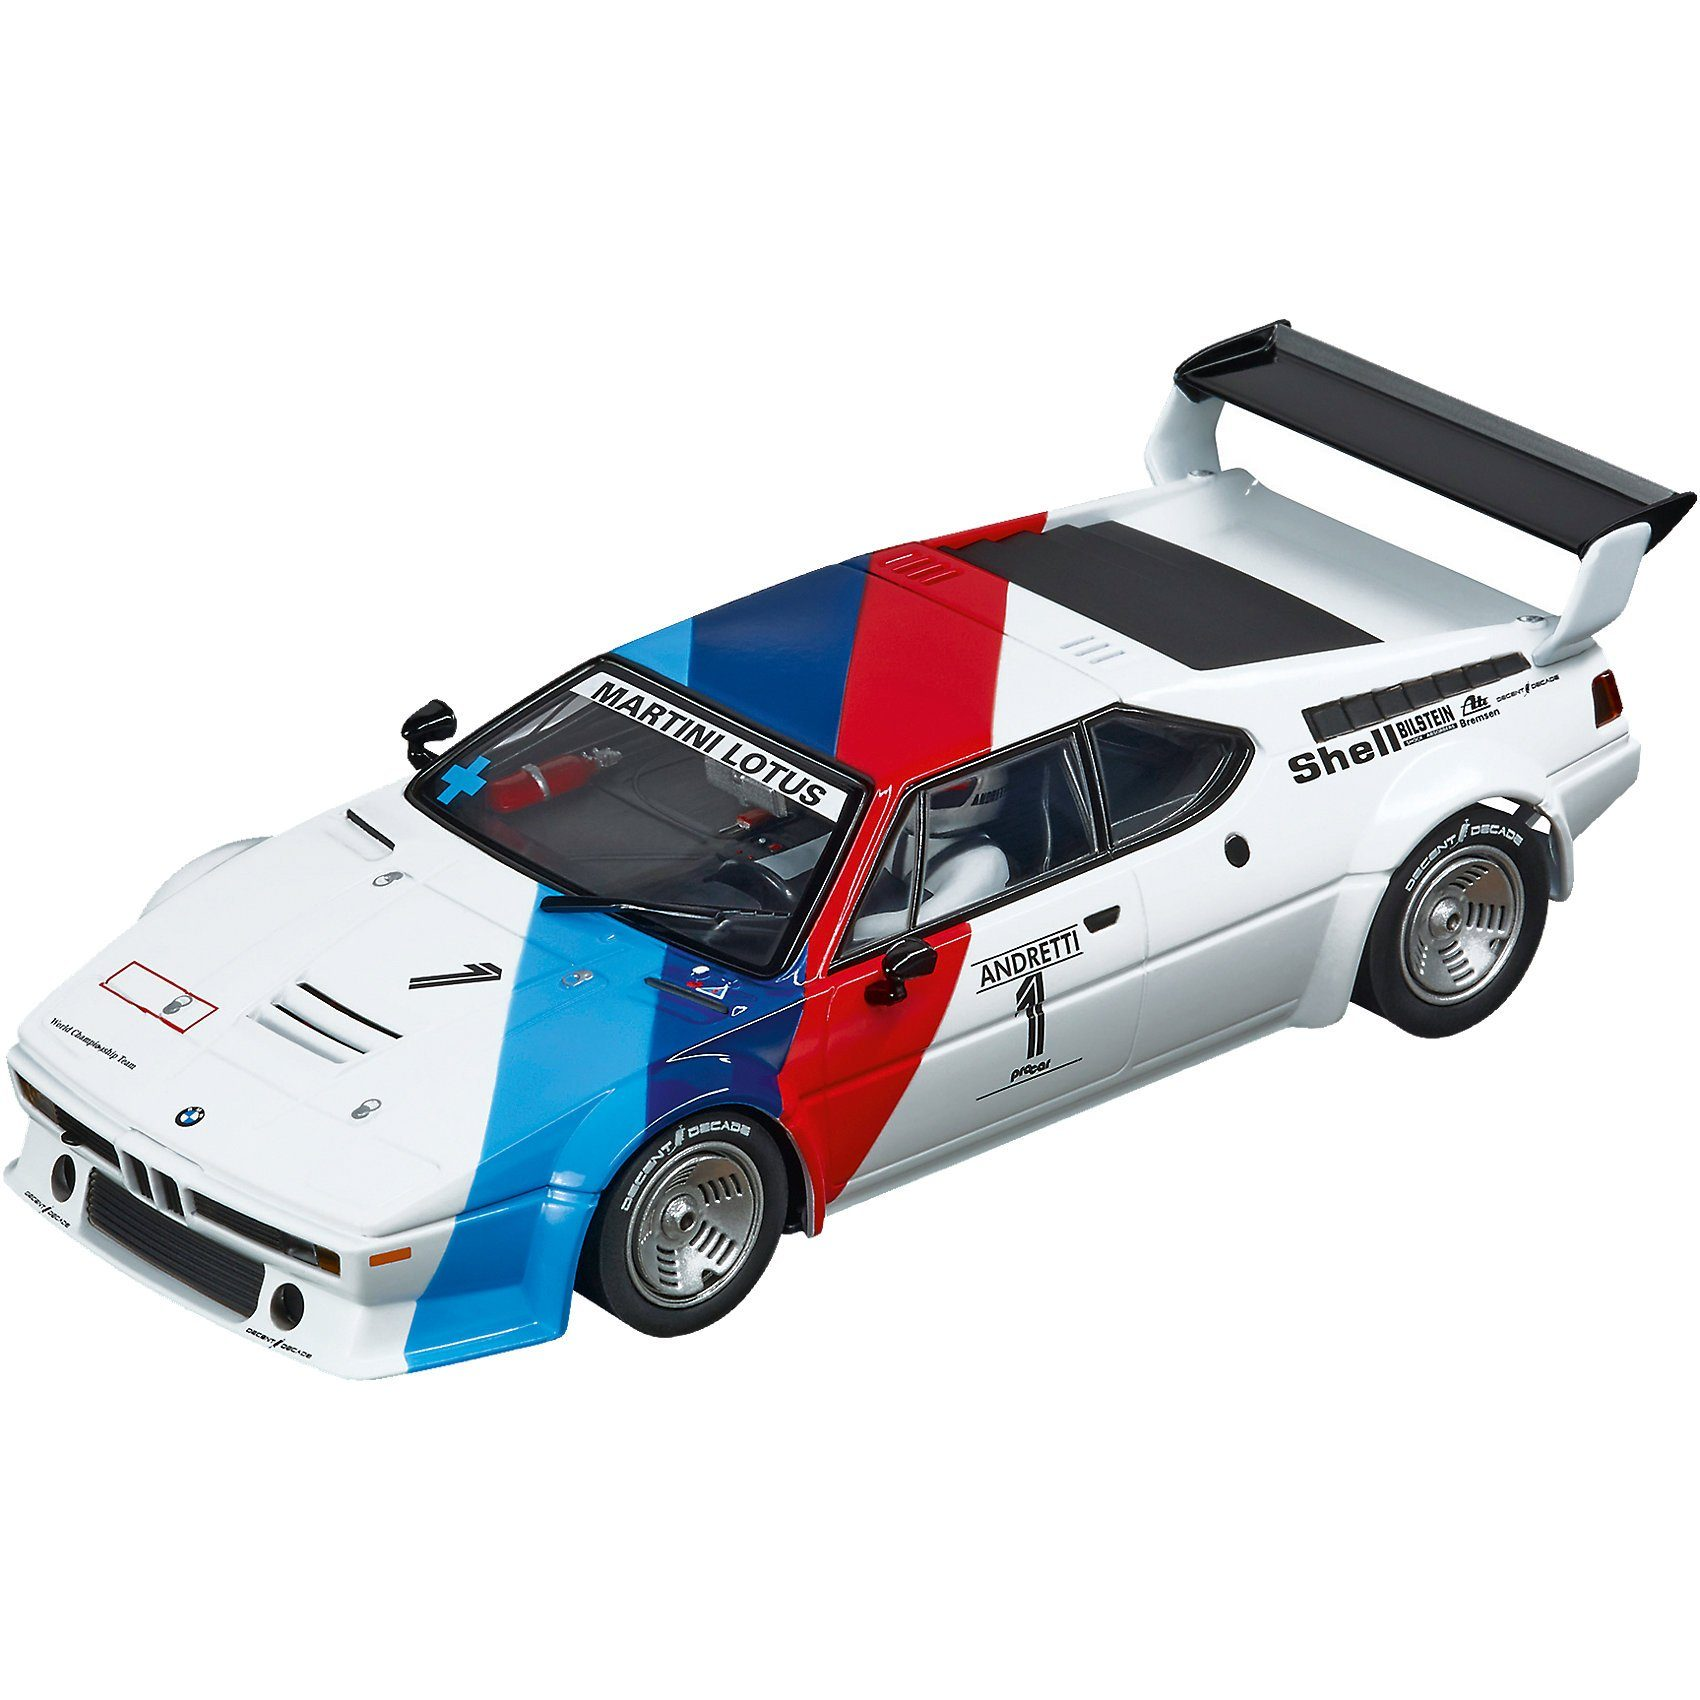 "Digital 132 30814 BMW M1 Procar ""Andretti, No.01"", 1979"